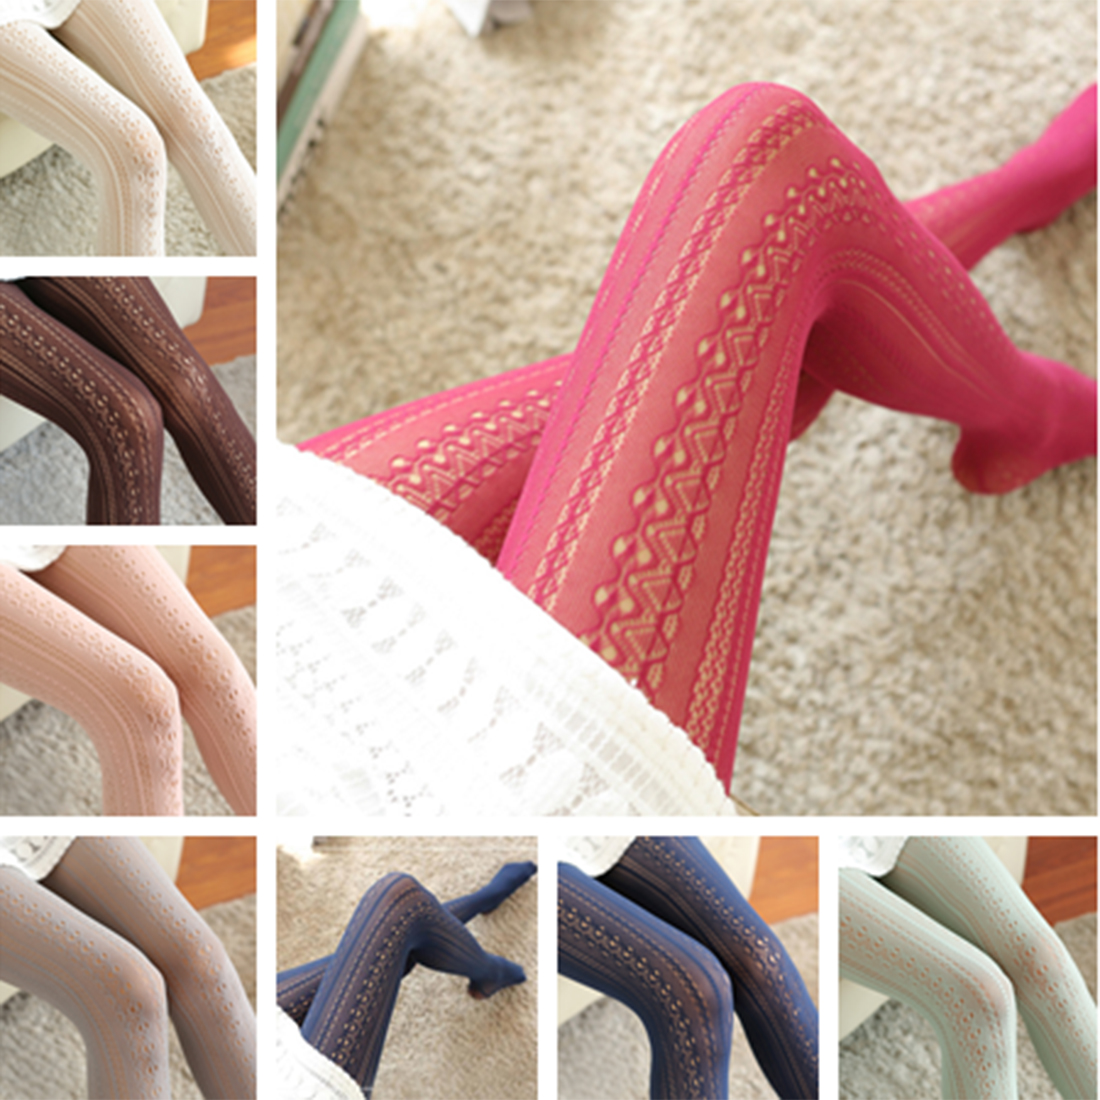 2017 Elegant Design Hollow out lace bars in fishnet stockings sexy lace pantyhose sweet women girls tights(China (Mainland))